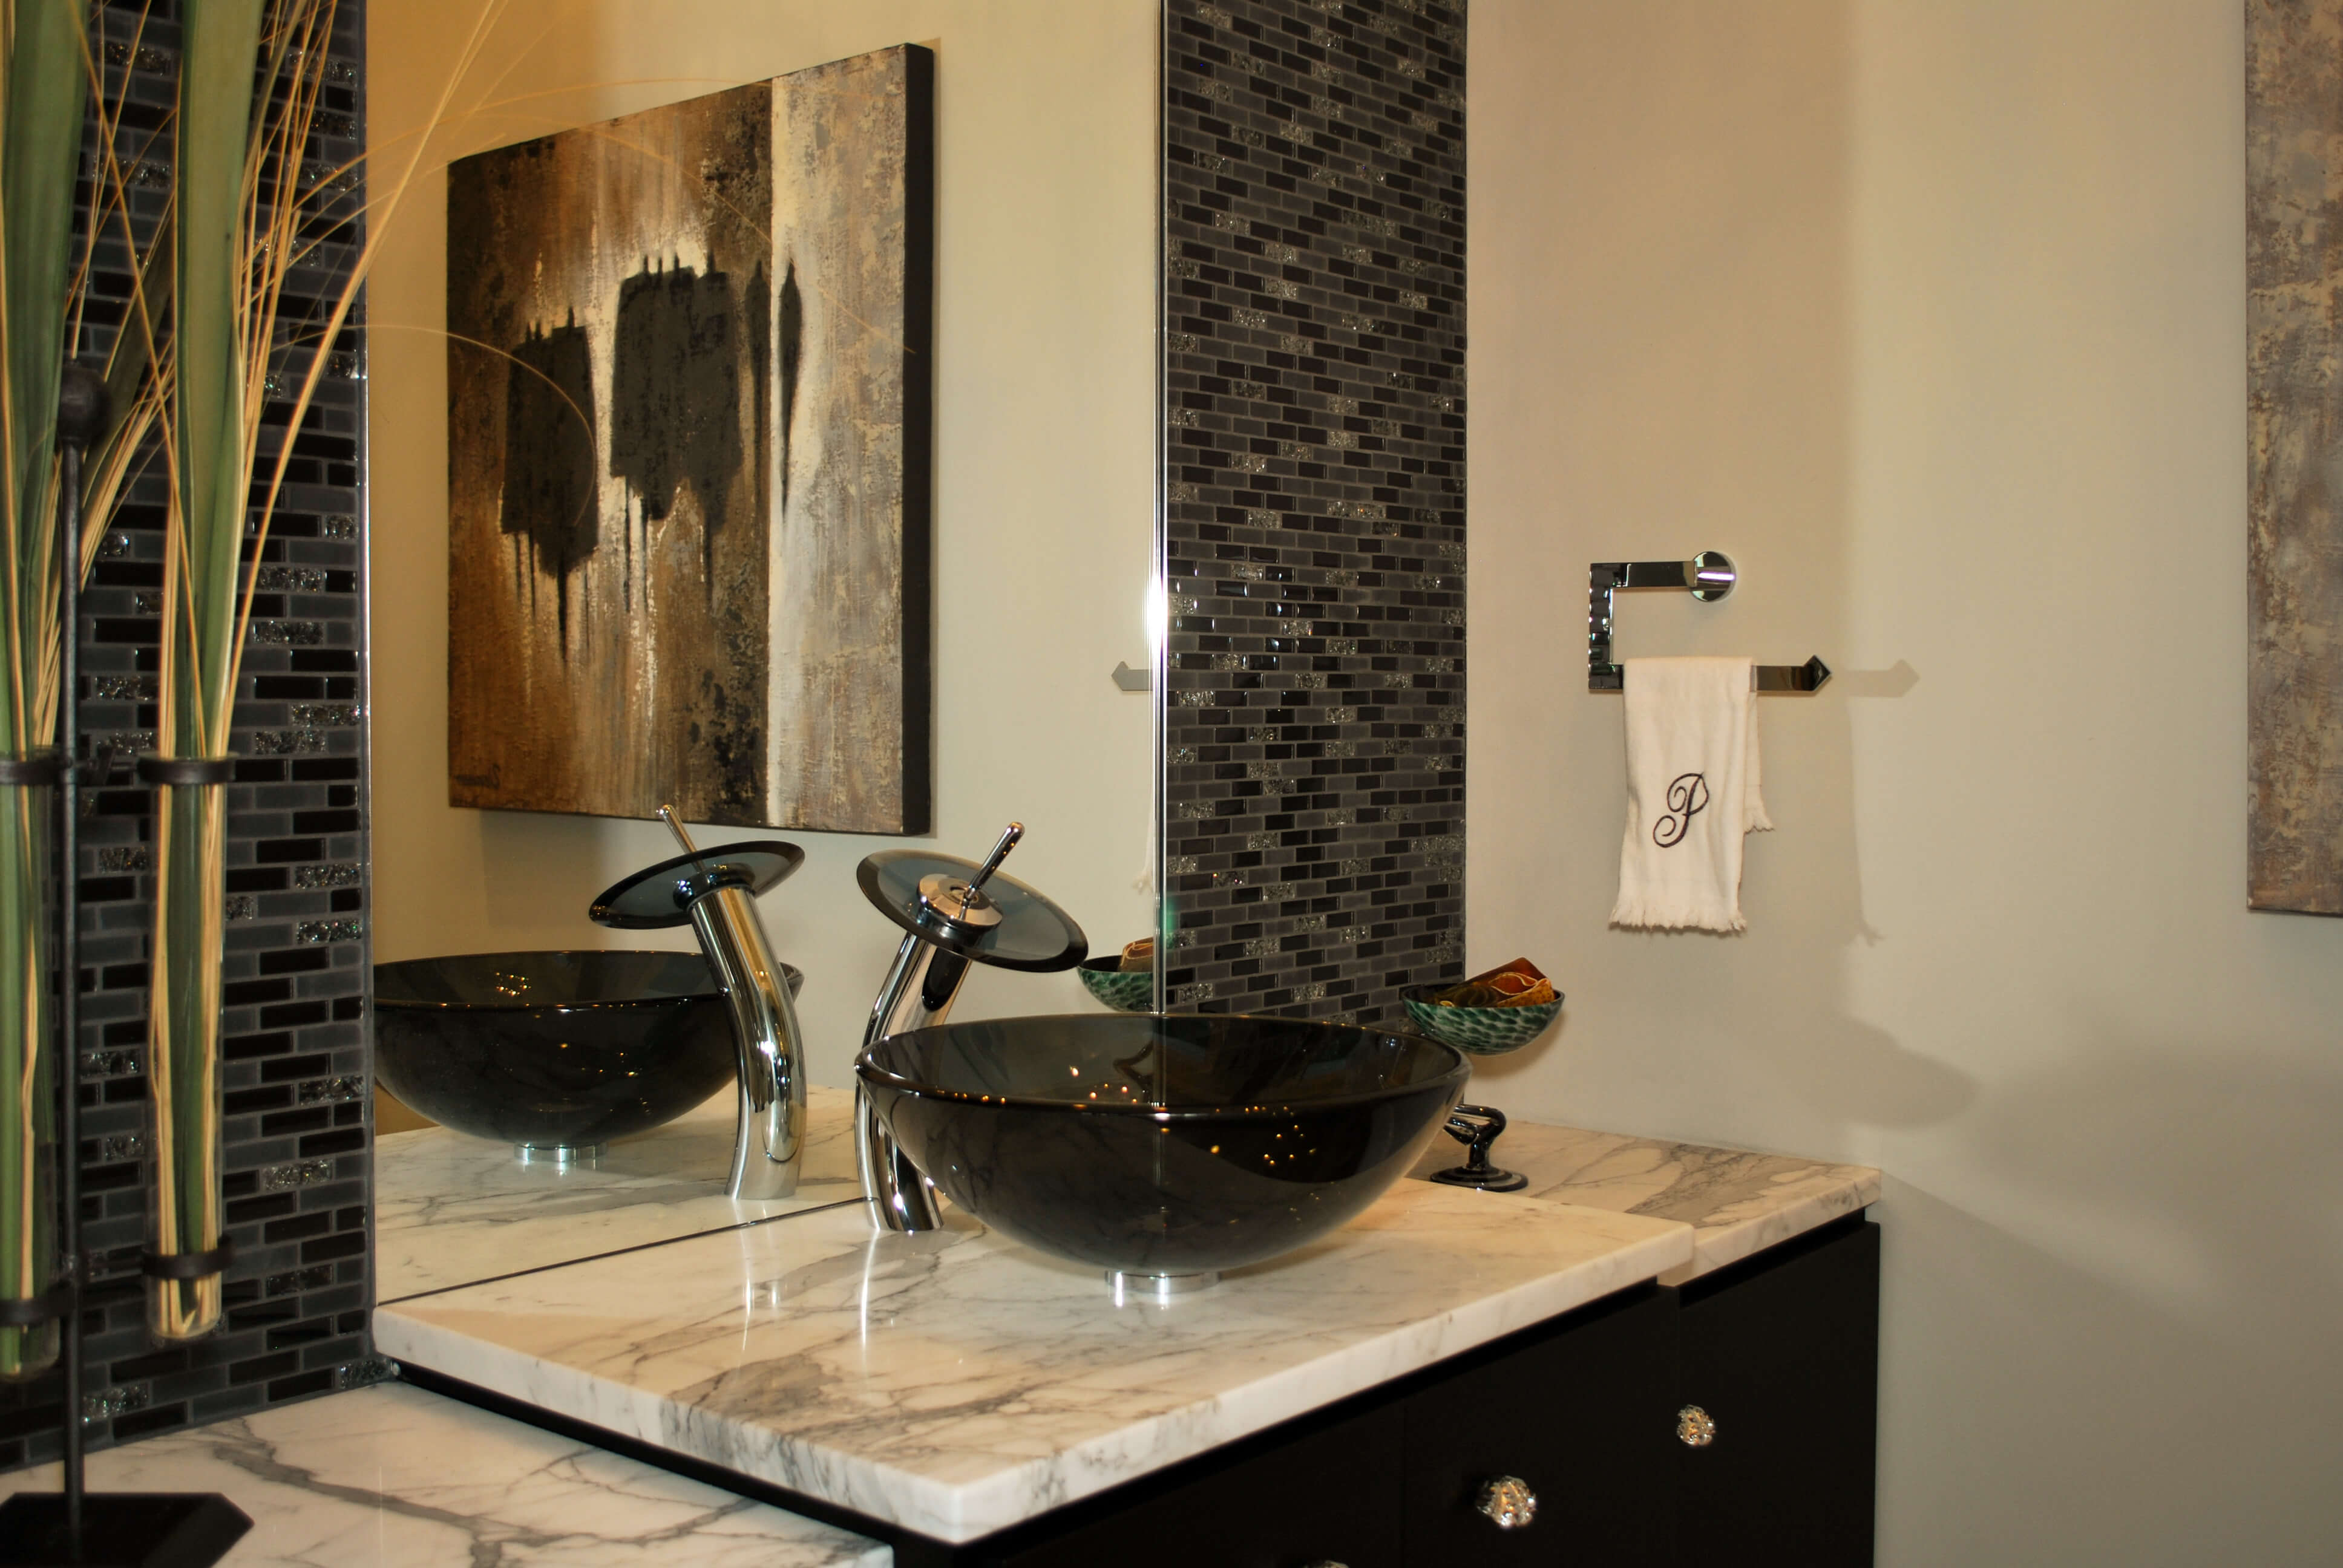 Bathroom features vessel sink over light marble countertop with black cabinetry. Tile backsplash surrounds mirror.